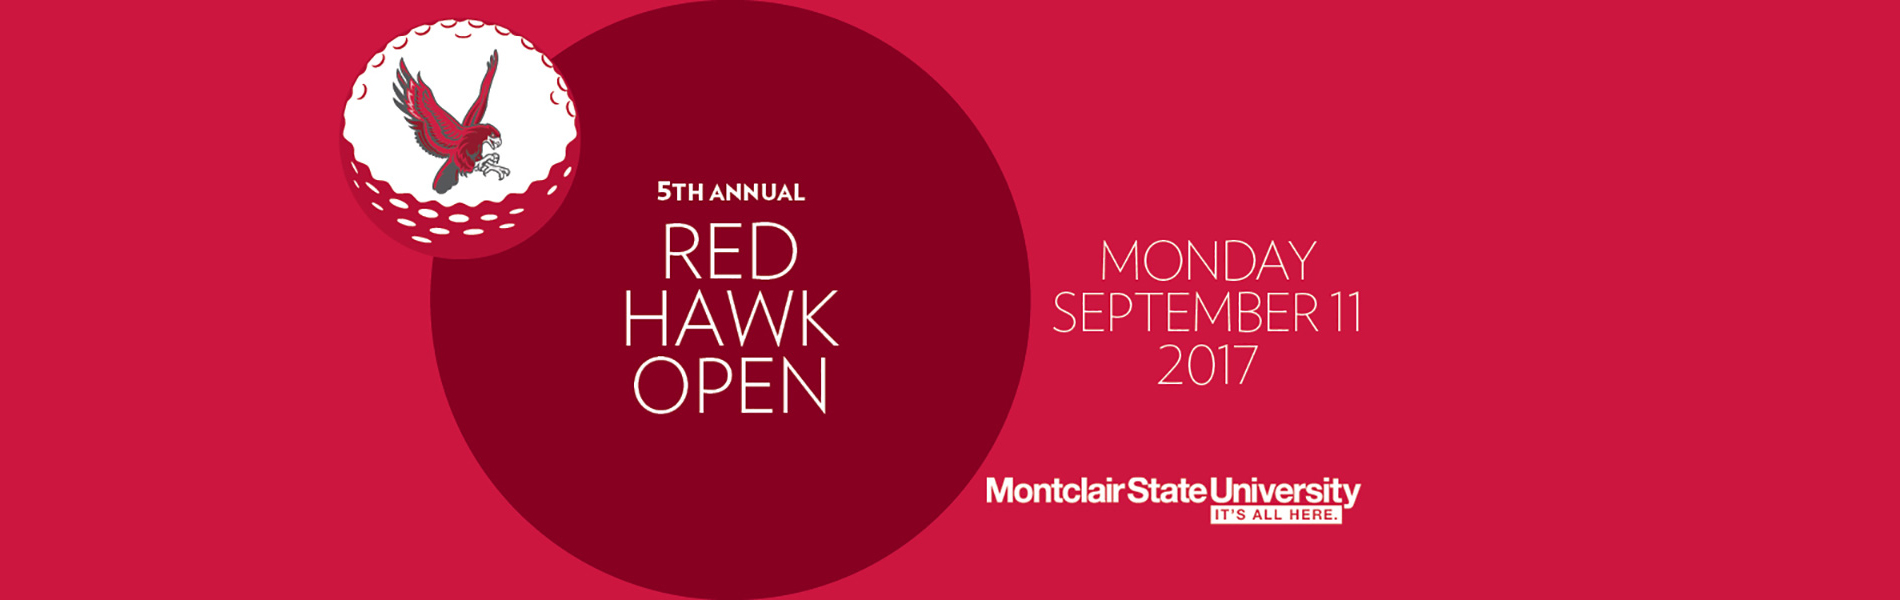 5th Annual Red Hawk Open